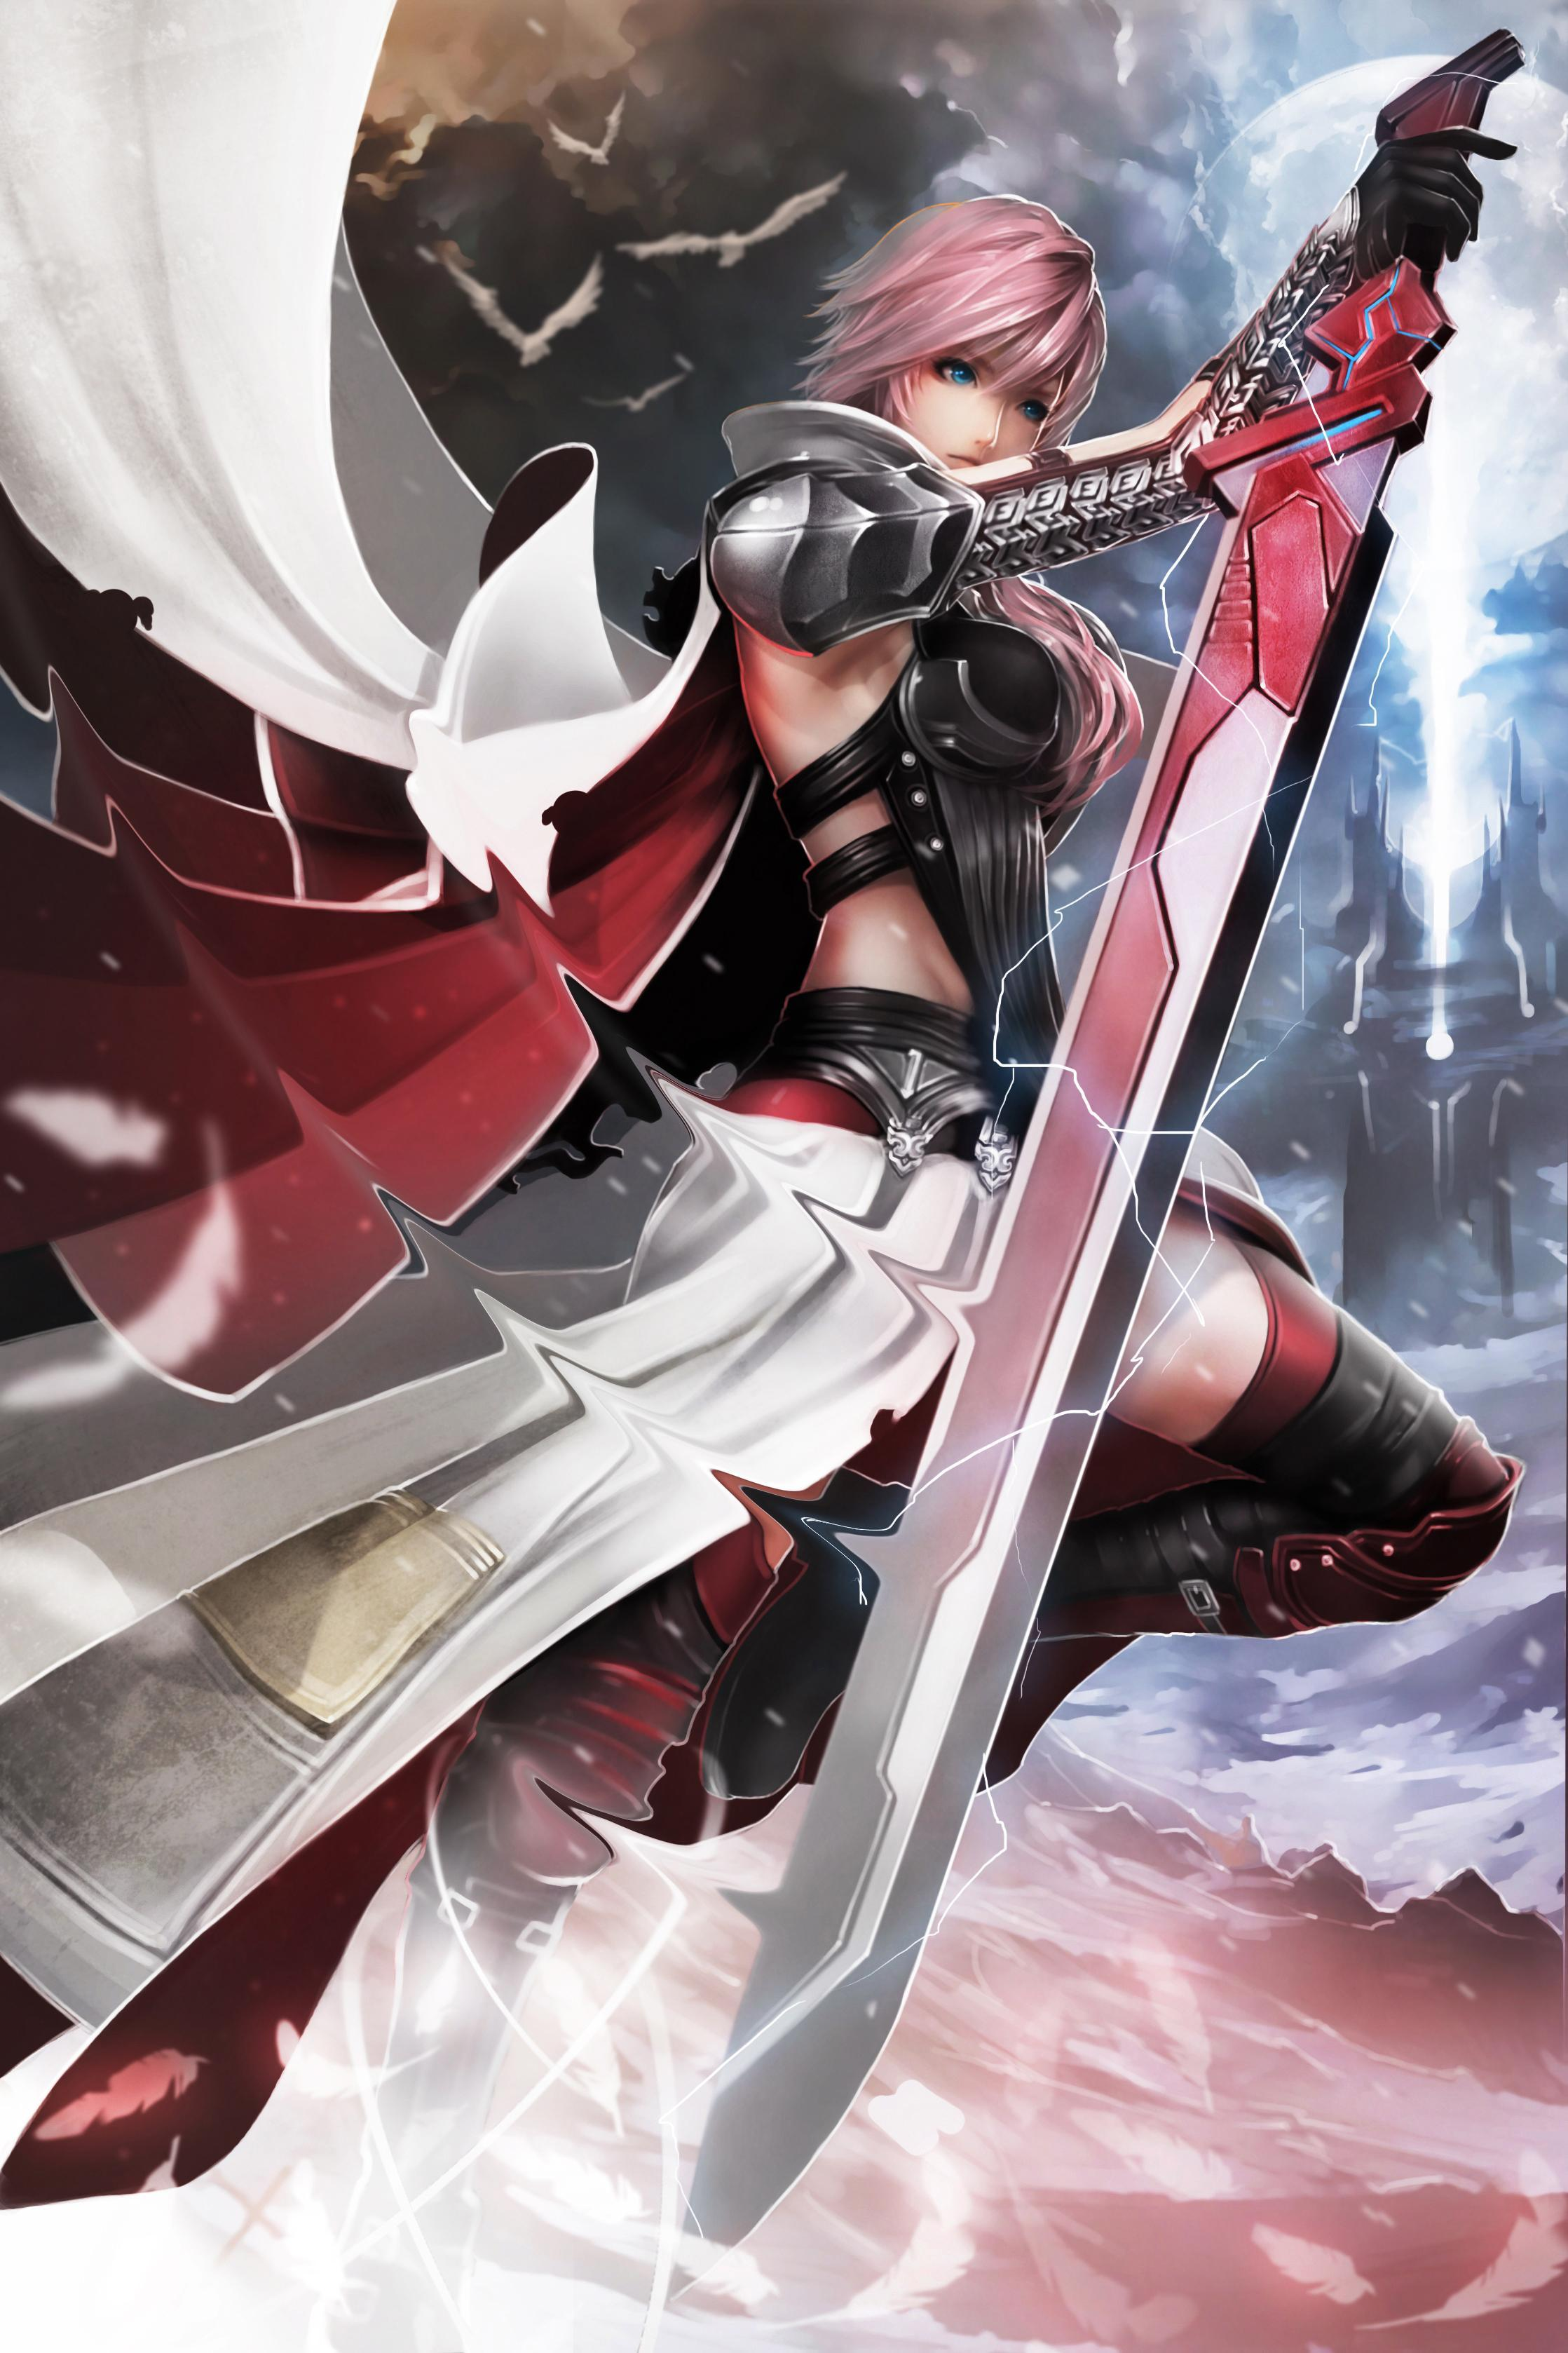 Lightning Final Fantasy Wallpaper Art For Android APK Download